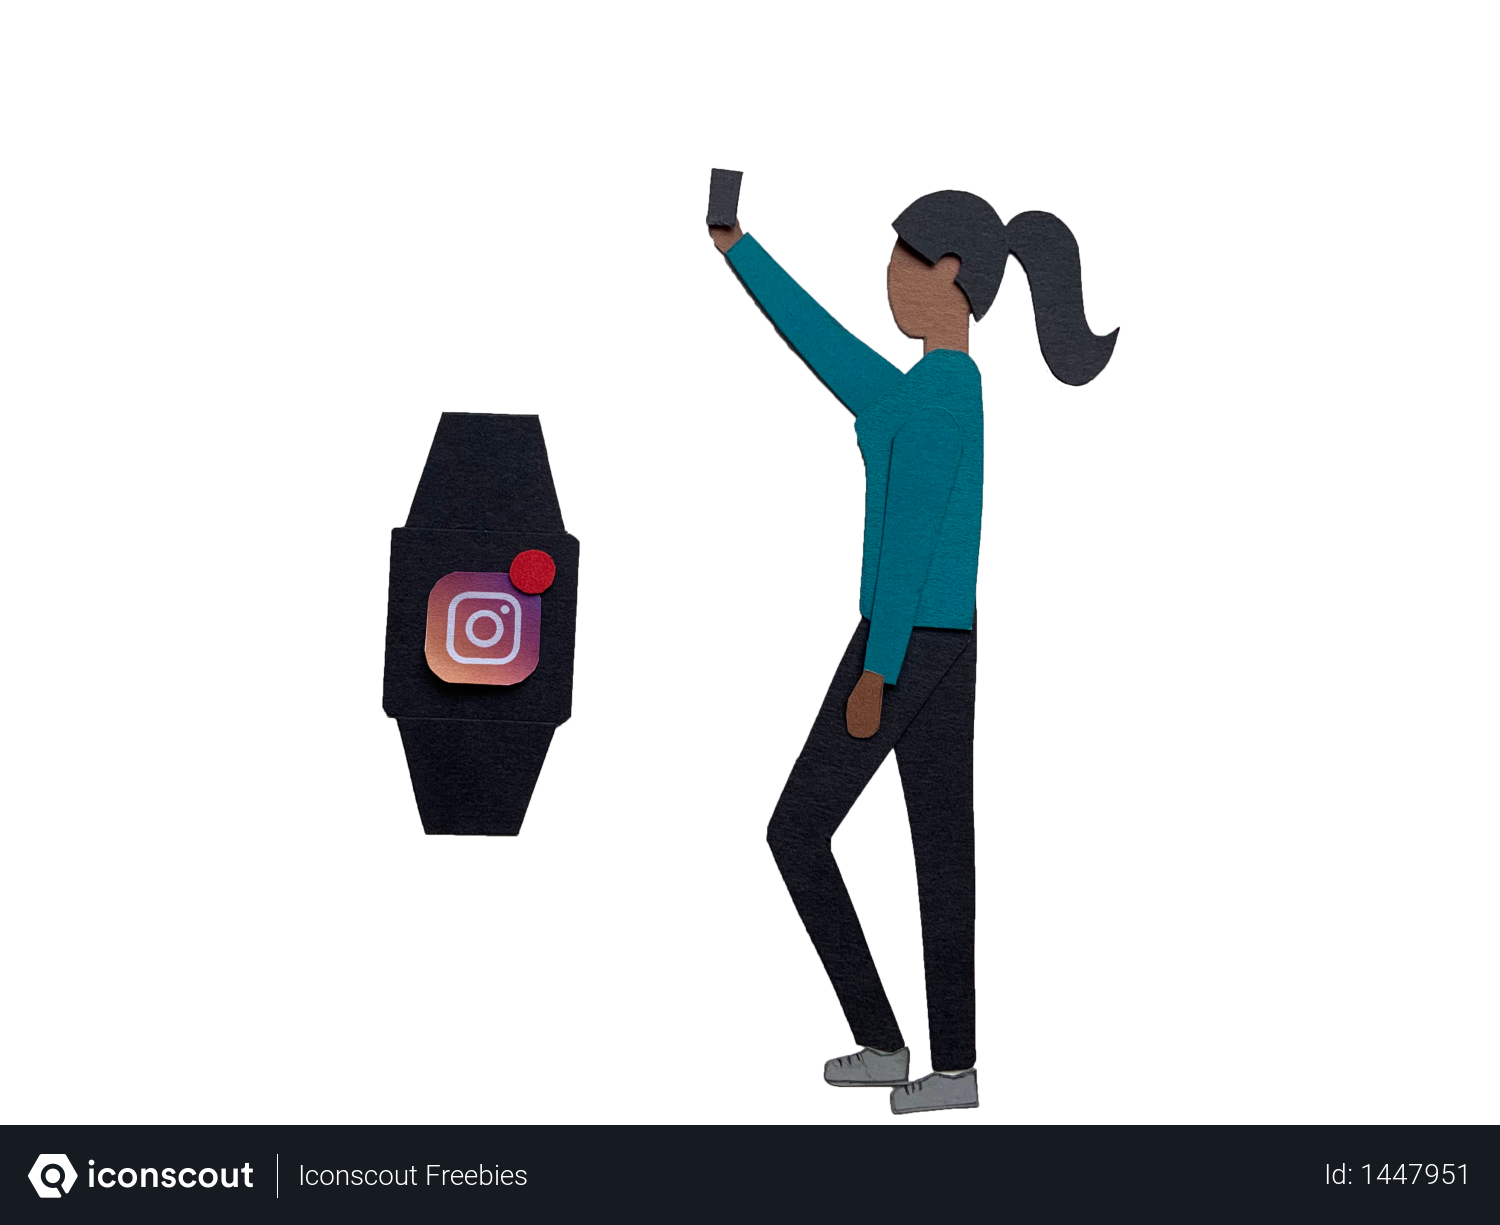 Smart watch sync with mobile Illustration